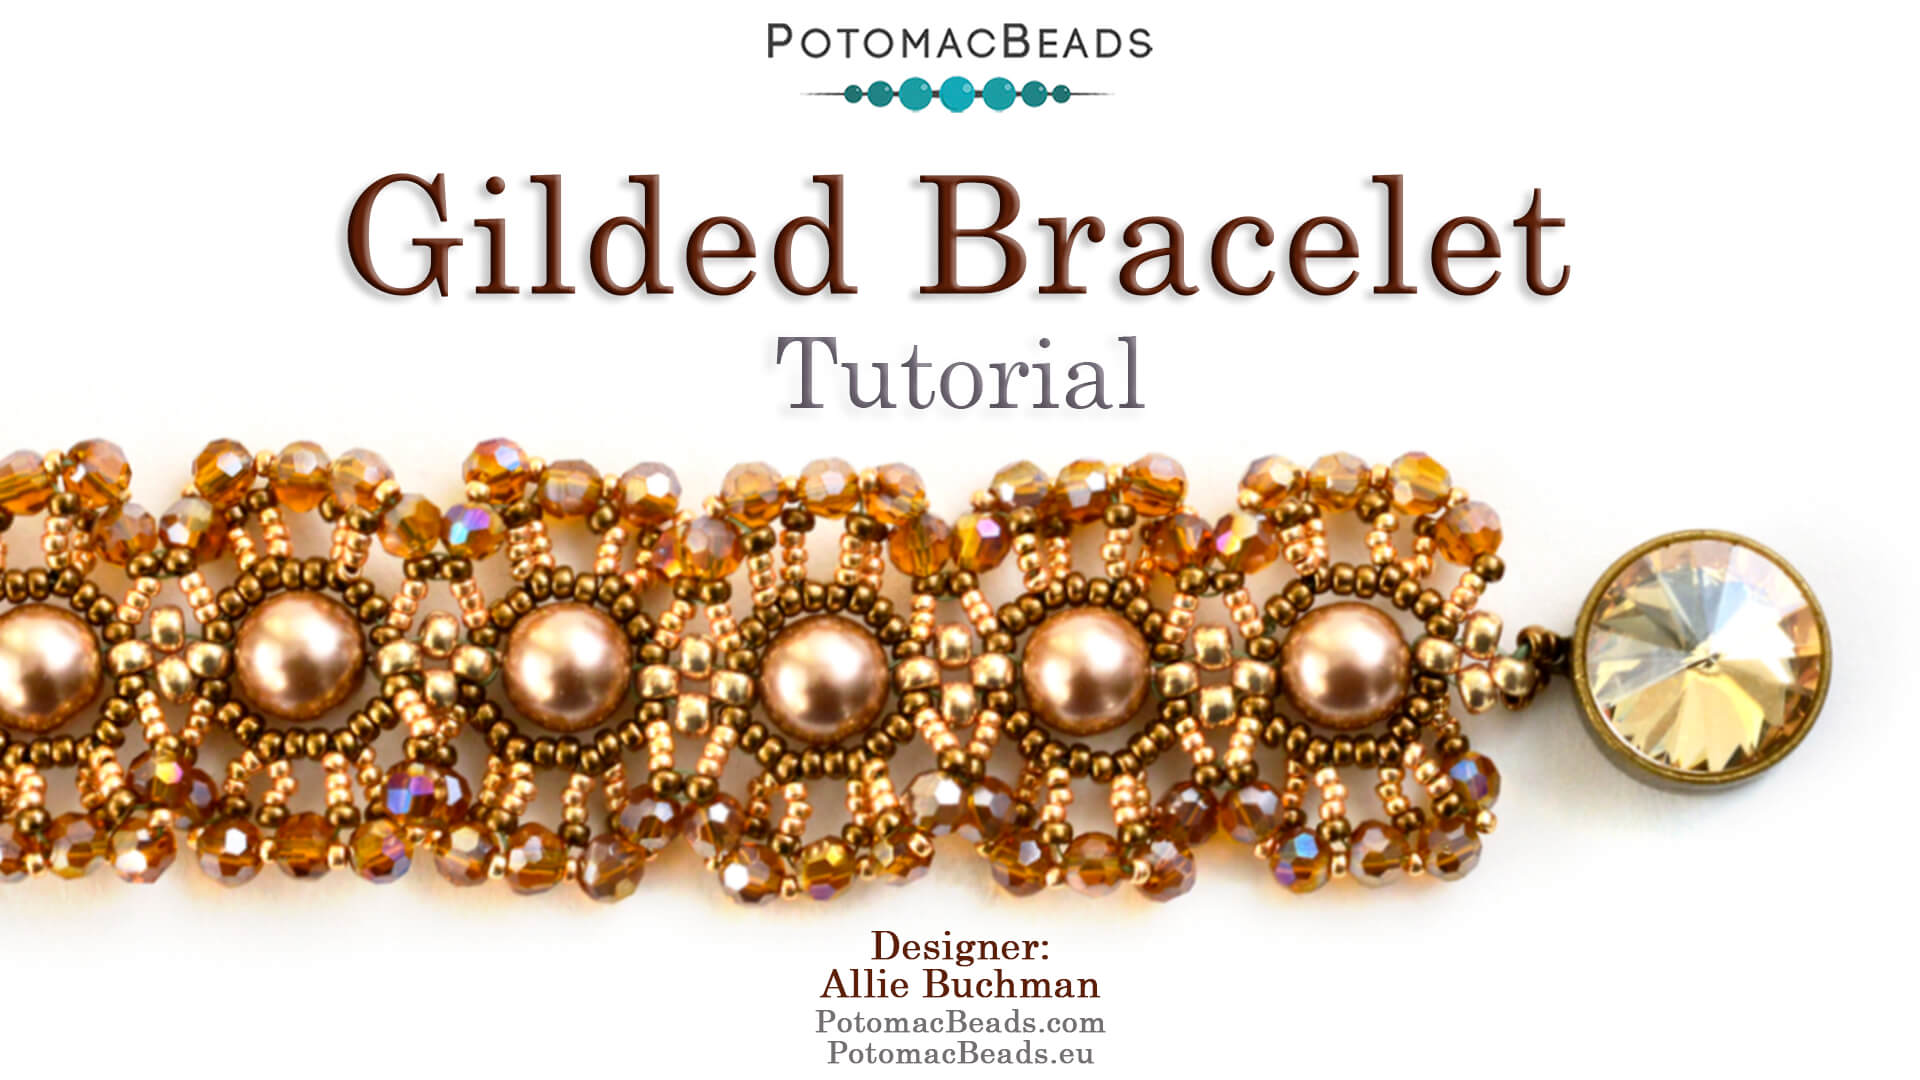 How to Bead Jewelry / Videos Sorted by Beads / Pearl Videos (Czech, Freshwater, Potomac Pearls) / Gilded Bracelet Tutorial